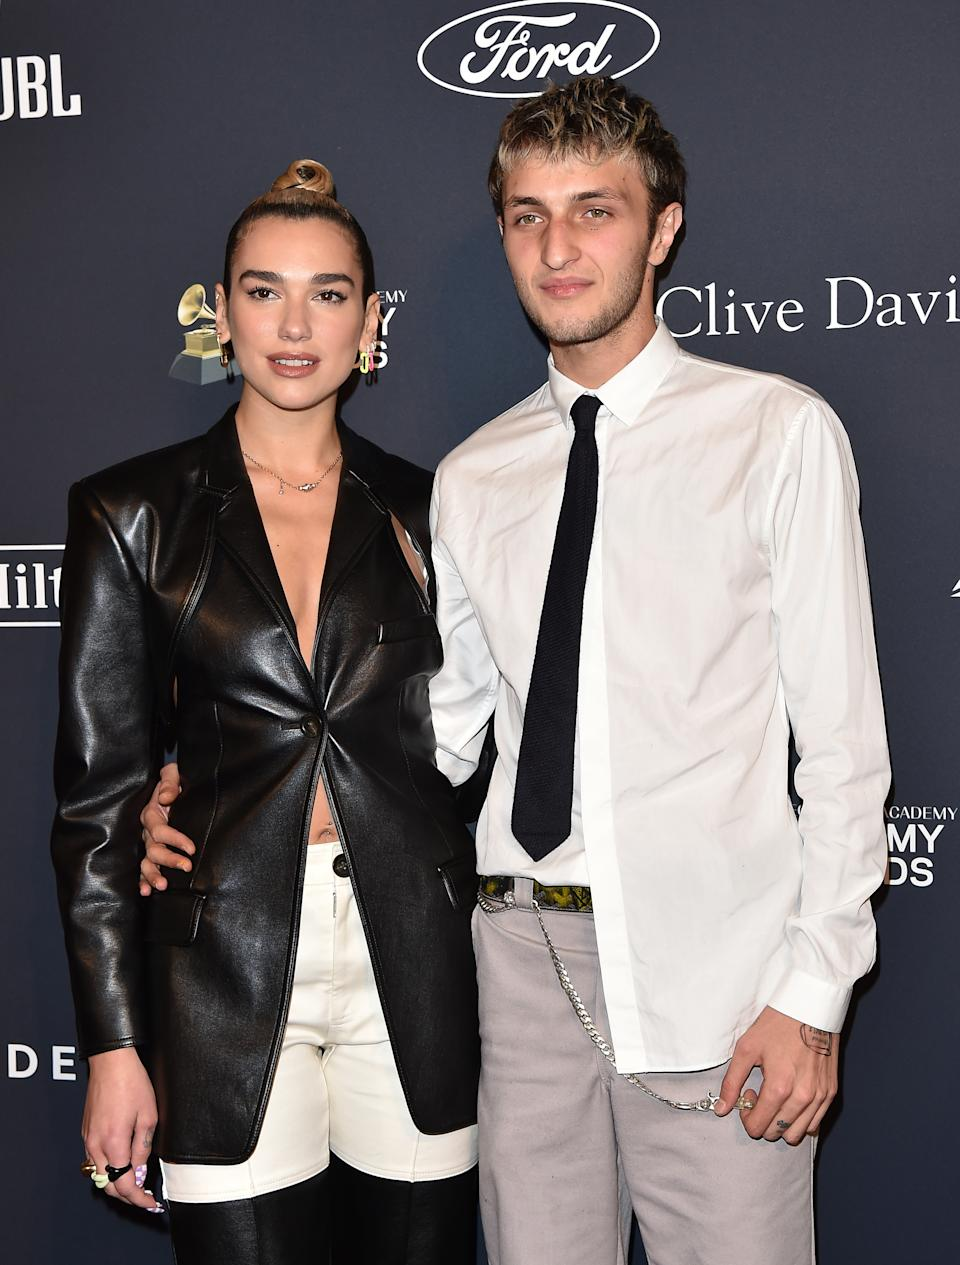 """Dua Lipa and Anwar Hadid attend the Pre-GRAMMY Gala and GRAMMY Salute to Industry Icons Honoring Sean """"Diddy"""" Combs at The Beverly Hilton Hotel on January 25, 2020 in Beverly Hills, California. (Photo by Axelle/Bauer-Griffin/FilmMagic)"""